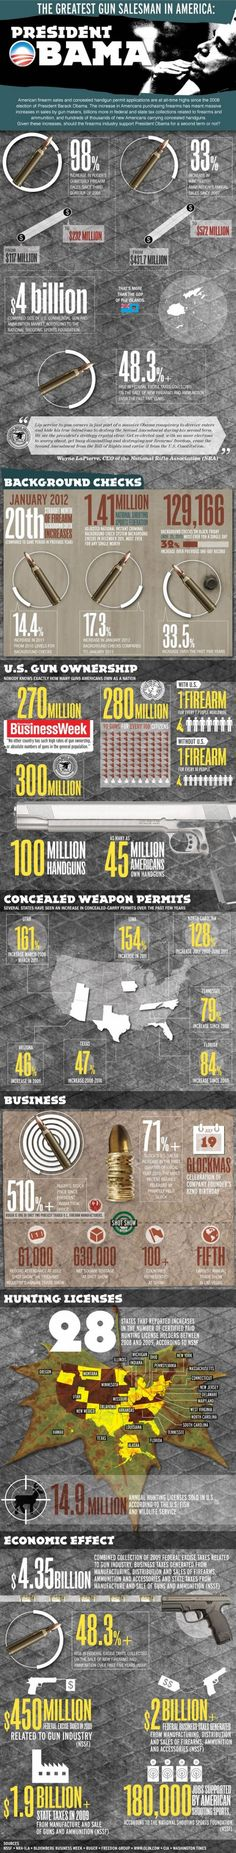 Ironically, the perceived hostility towards gun owners by President Obama has actually helped the firearms industry tremendously. Since the 2008 election, more Americans than ever before are purchasing firearms & ammunition. This has meant massive increases in sales by firearm & ammunition makers, billions more in federal and state tax collections related to guns & ammo, increased membership in the NRA, and hundreds of thousands of new Americans carrying concealed handguns.